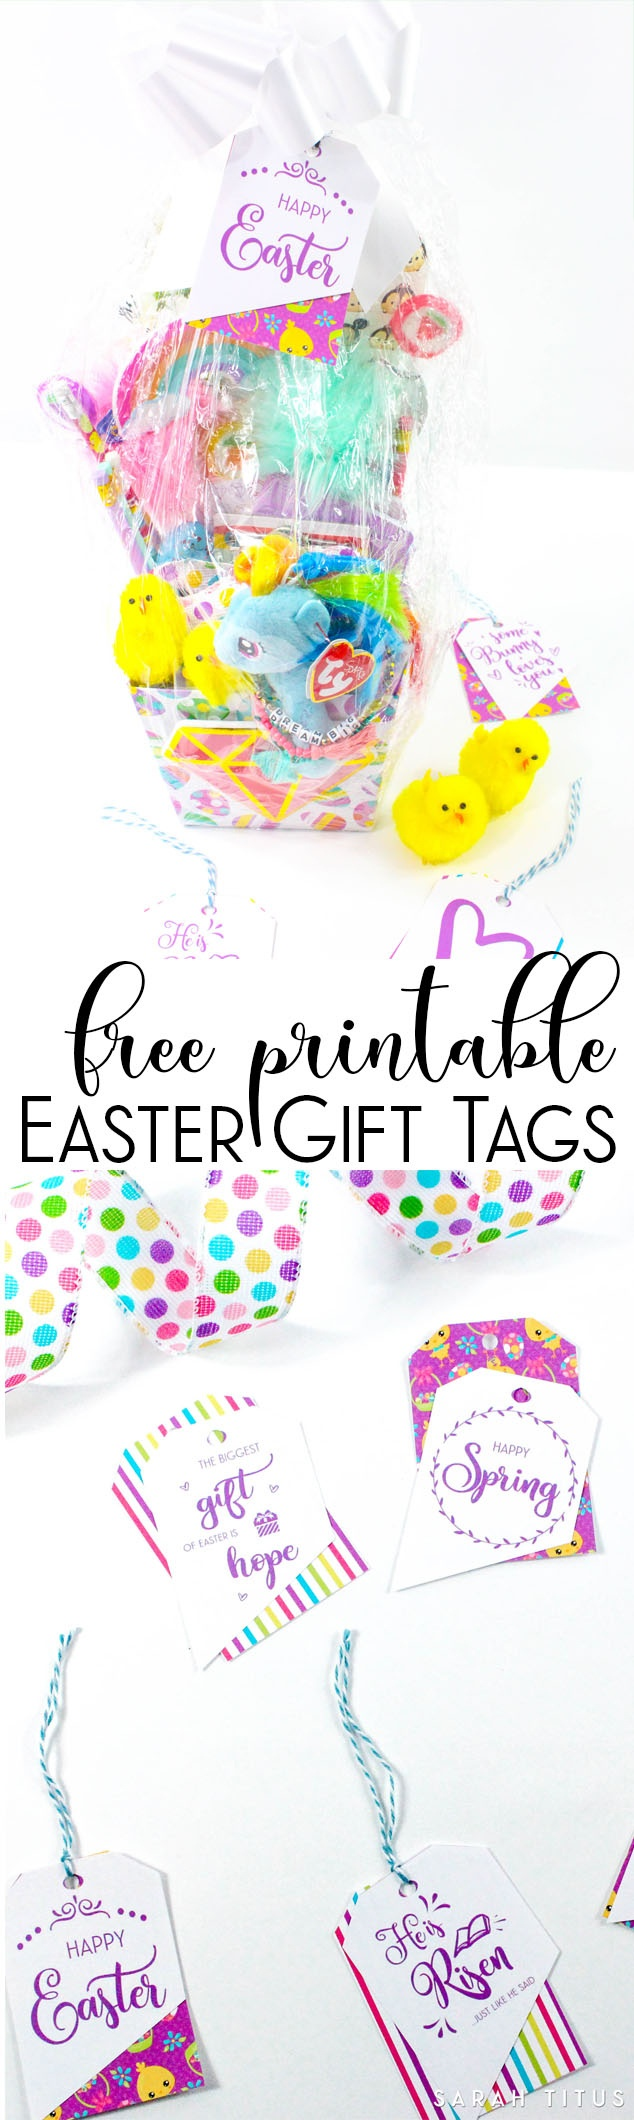 Free Printable Easter Gift Tags - Sarah Titus - Free Easter Place Cards Printable